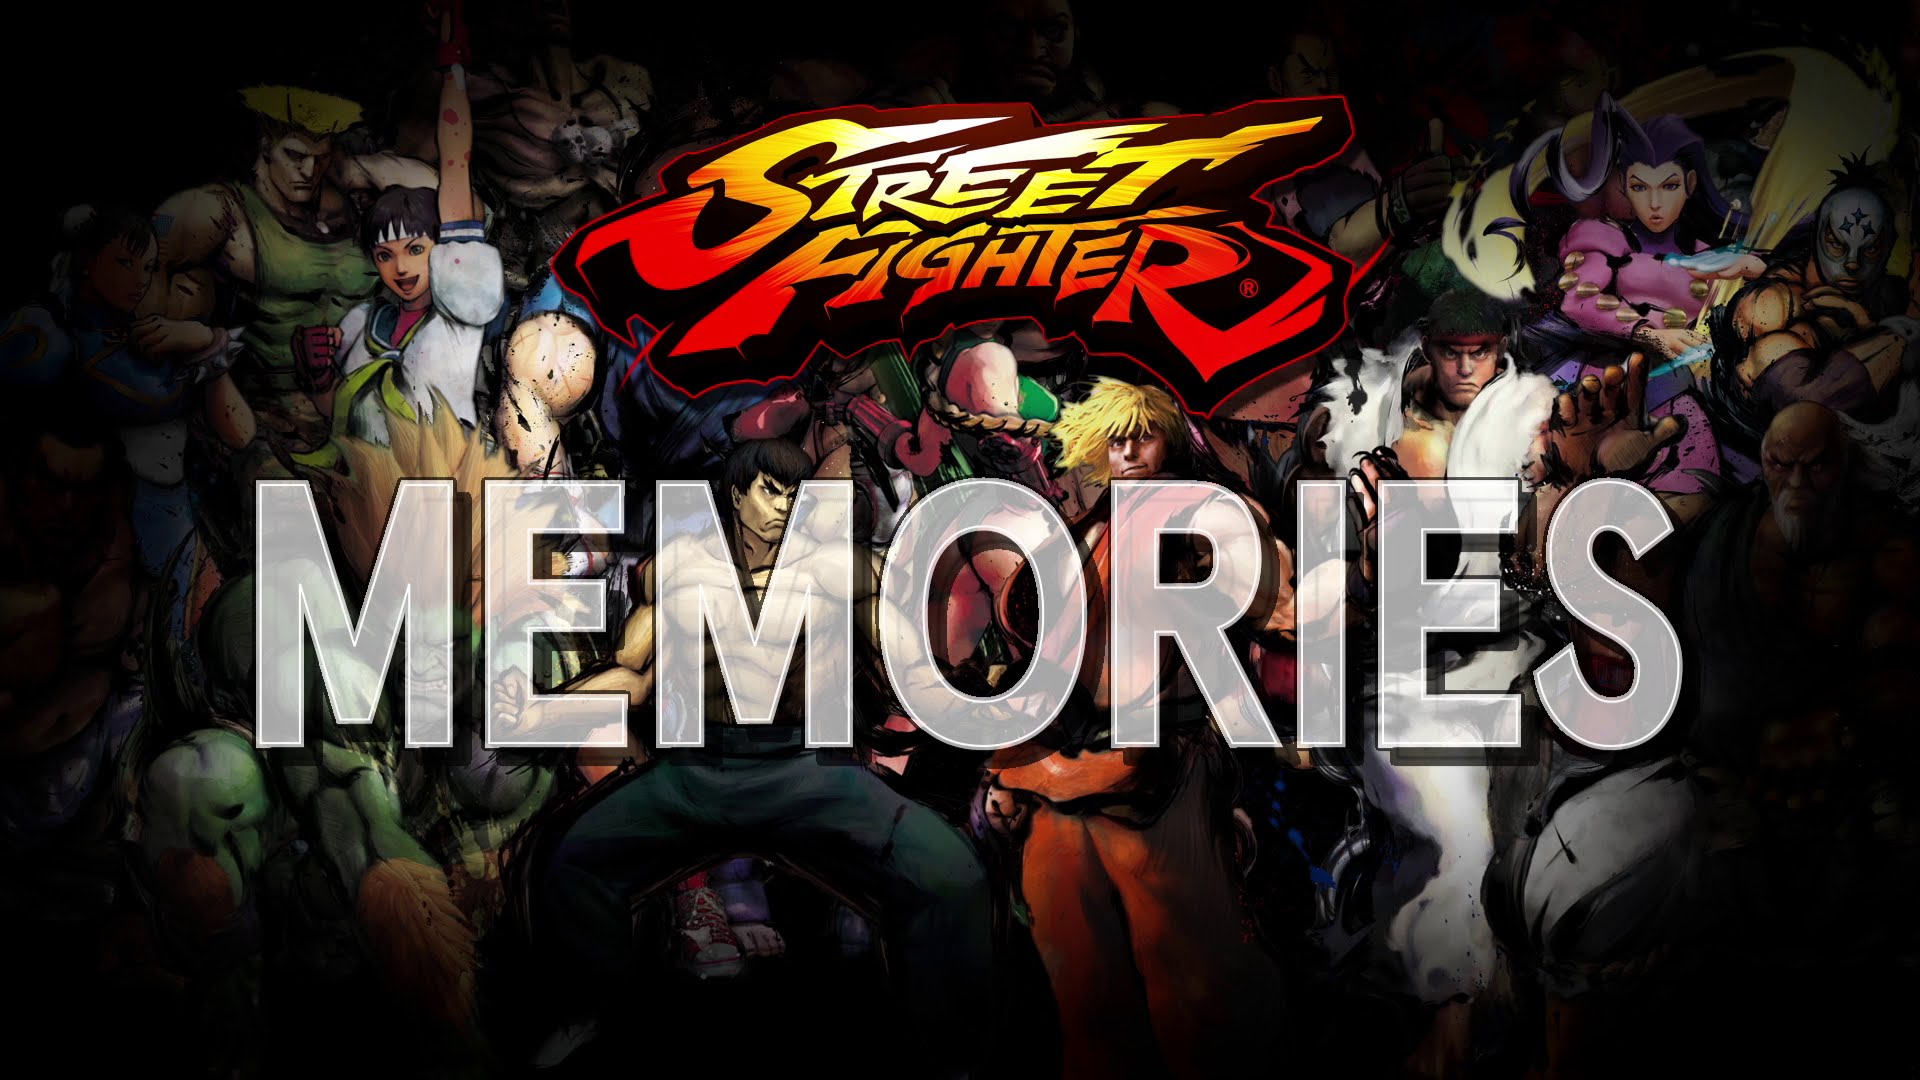 Street Fighter Memories